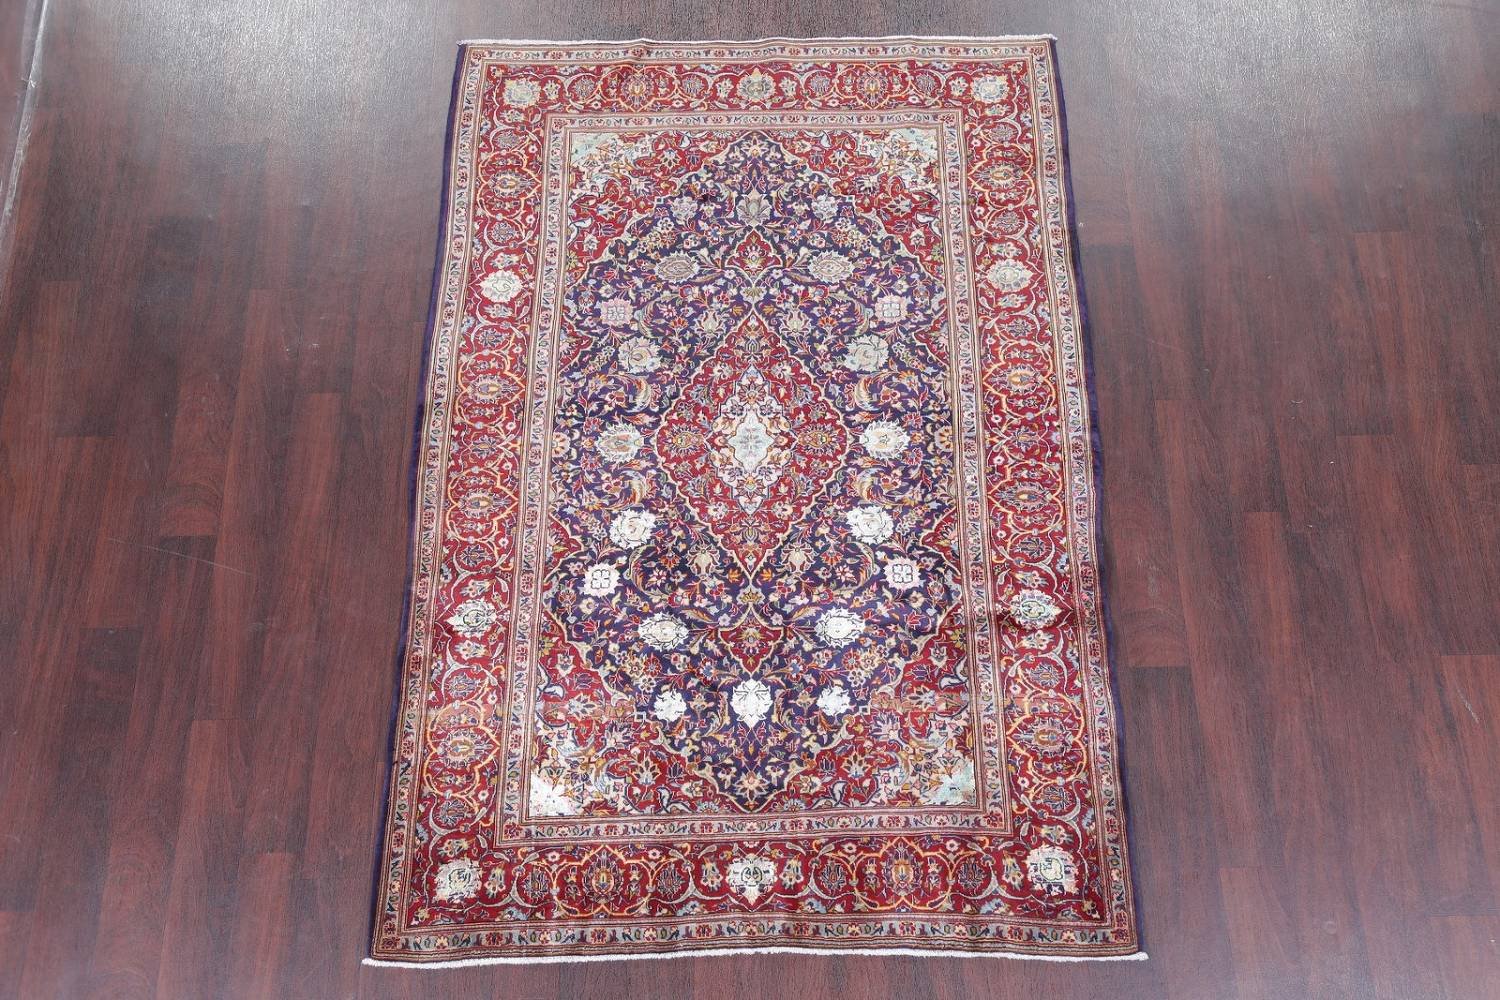 Vegetable Dye Floral Blue Kashan Persian Hand-Knotted Area Rug Wool 5x7 image 2